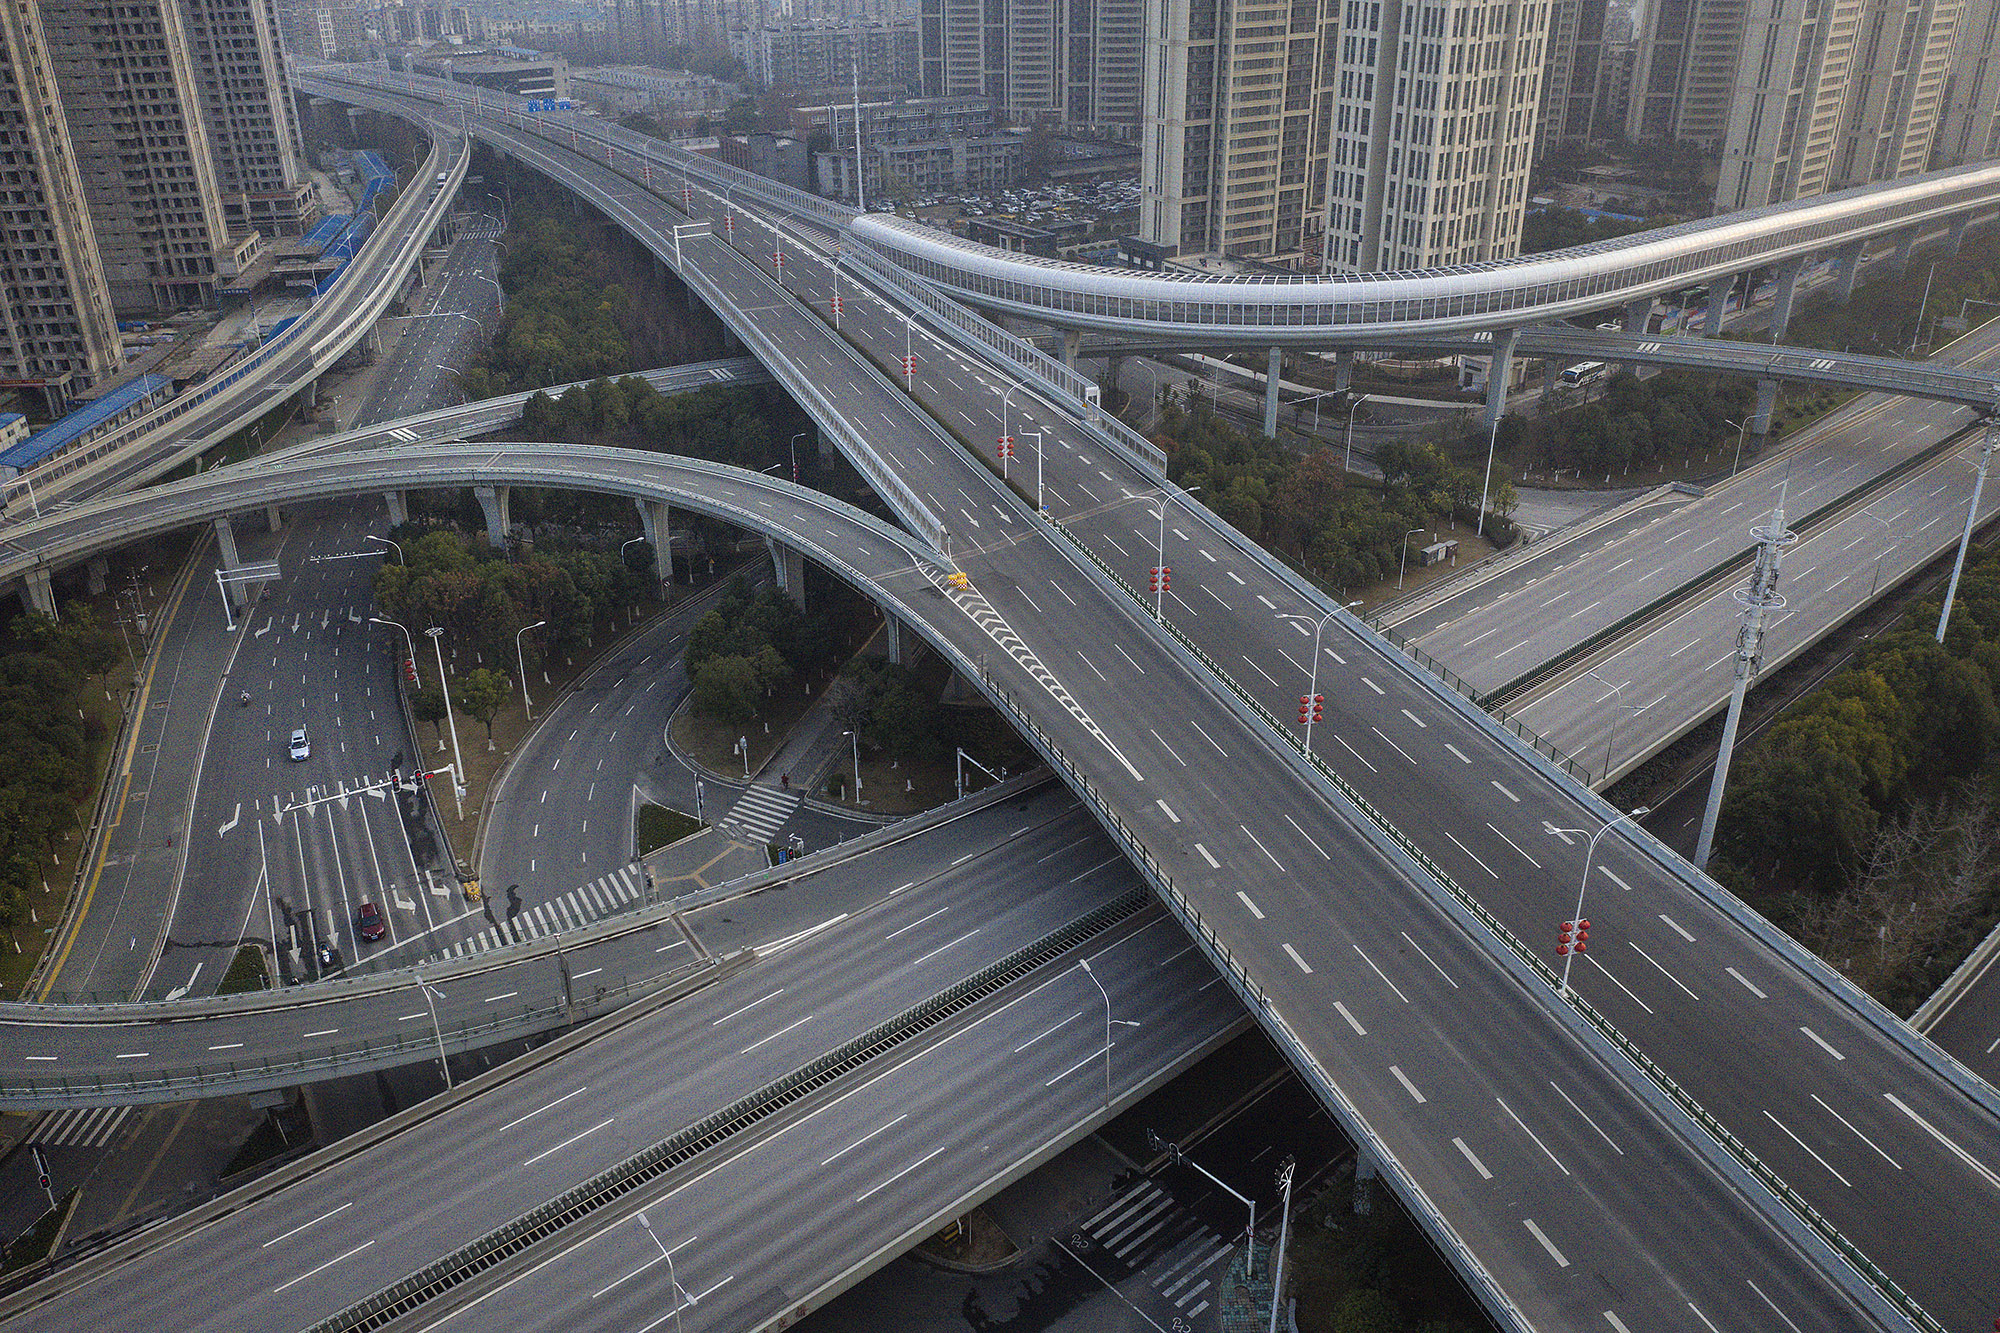 An aerial view of the roads and bridges are seen on February 3, 2020 in Wuhan, Hubei province, China. The number of those who have died from the Wuhan coronavirus, known as 2019-nCoV, in China climbed to 361 and cases have been reported in other countries including the United States, Canada, Australia, Japan, South Korea, India, the United Kingdom, Germany, France, and several others. (Photo by Getty Images)